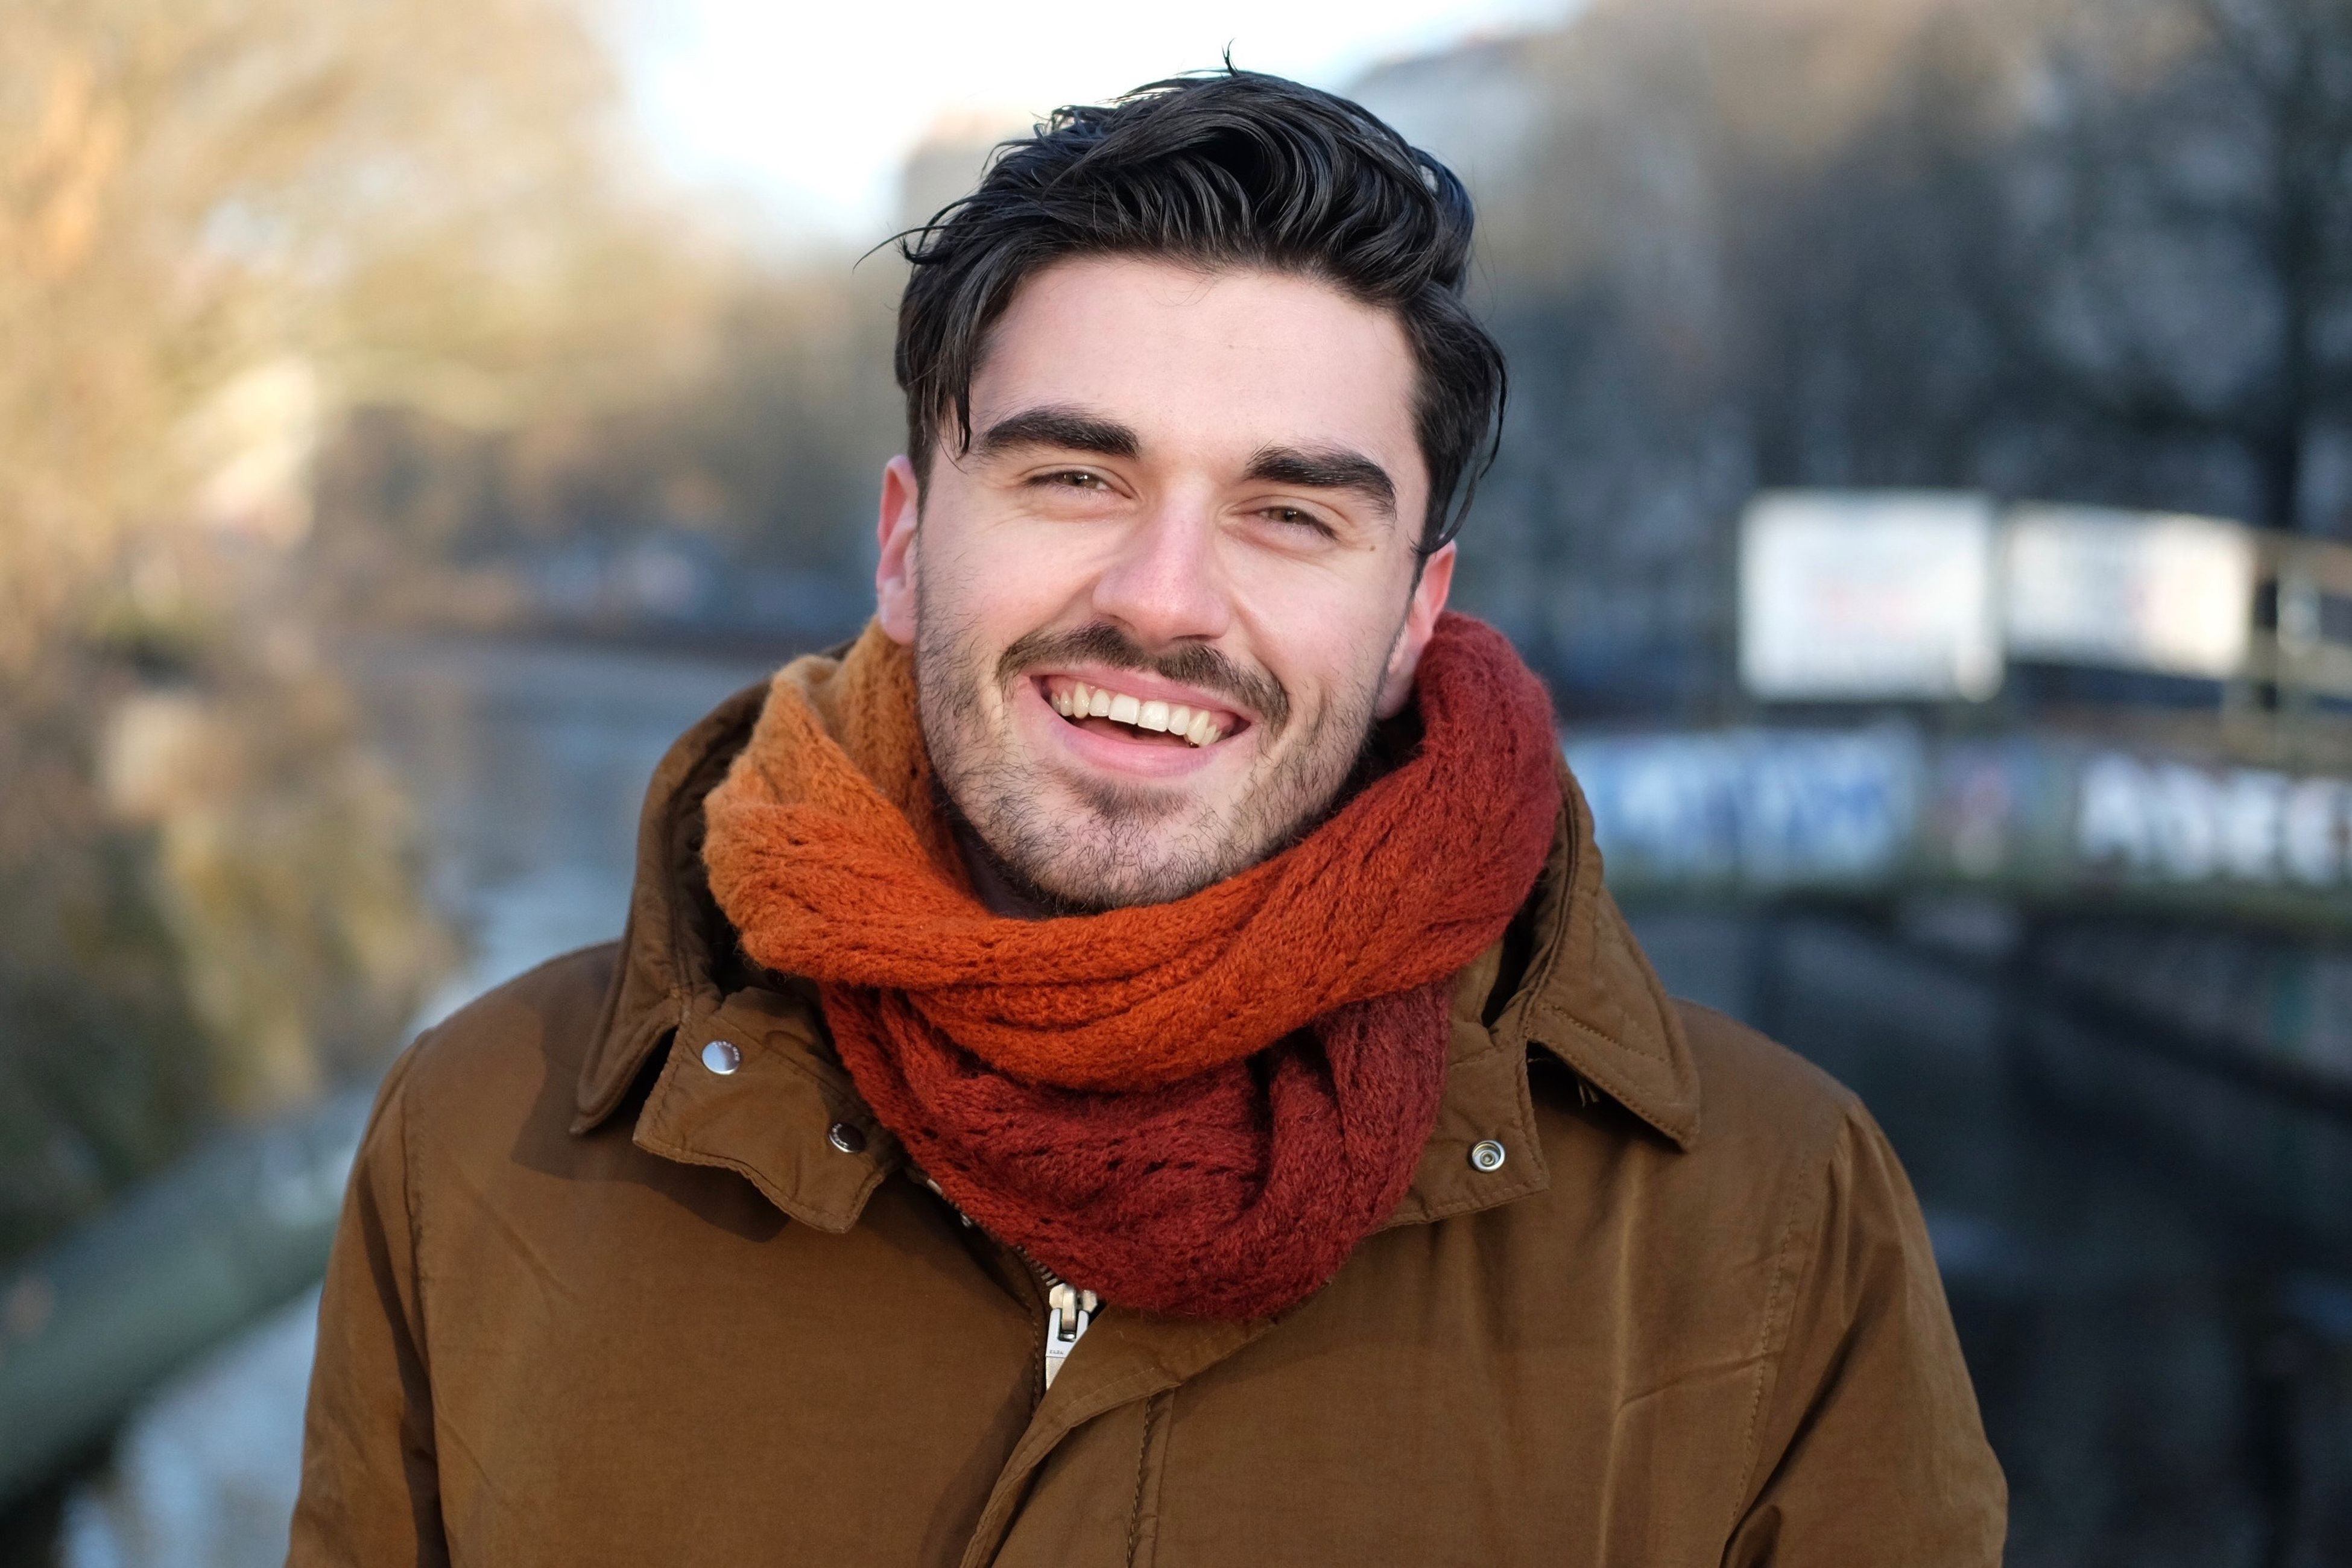 portrait, winter, headshot, one person, looking at camera, front view, only men, young adult, warm clothing, lifestyles, smiling, men, scarf, one man only, leisure activity, beard, adult, adults only, people, outdoors, cheerful, happiness, close-up, day